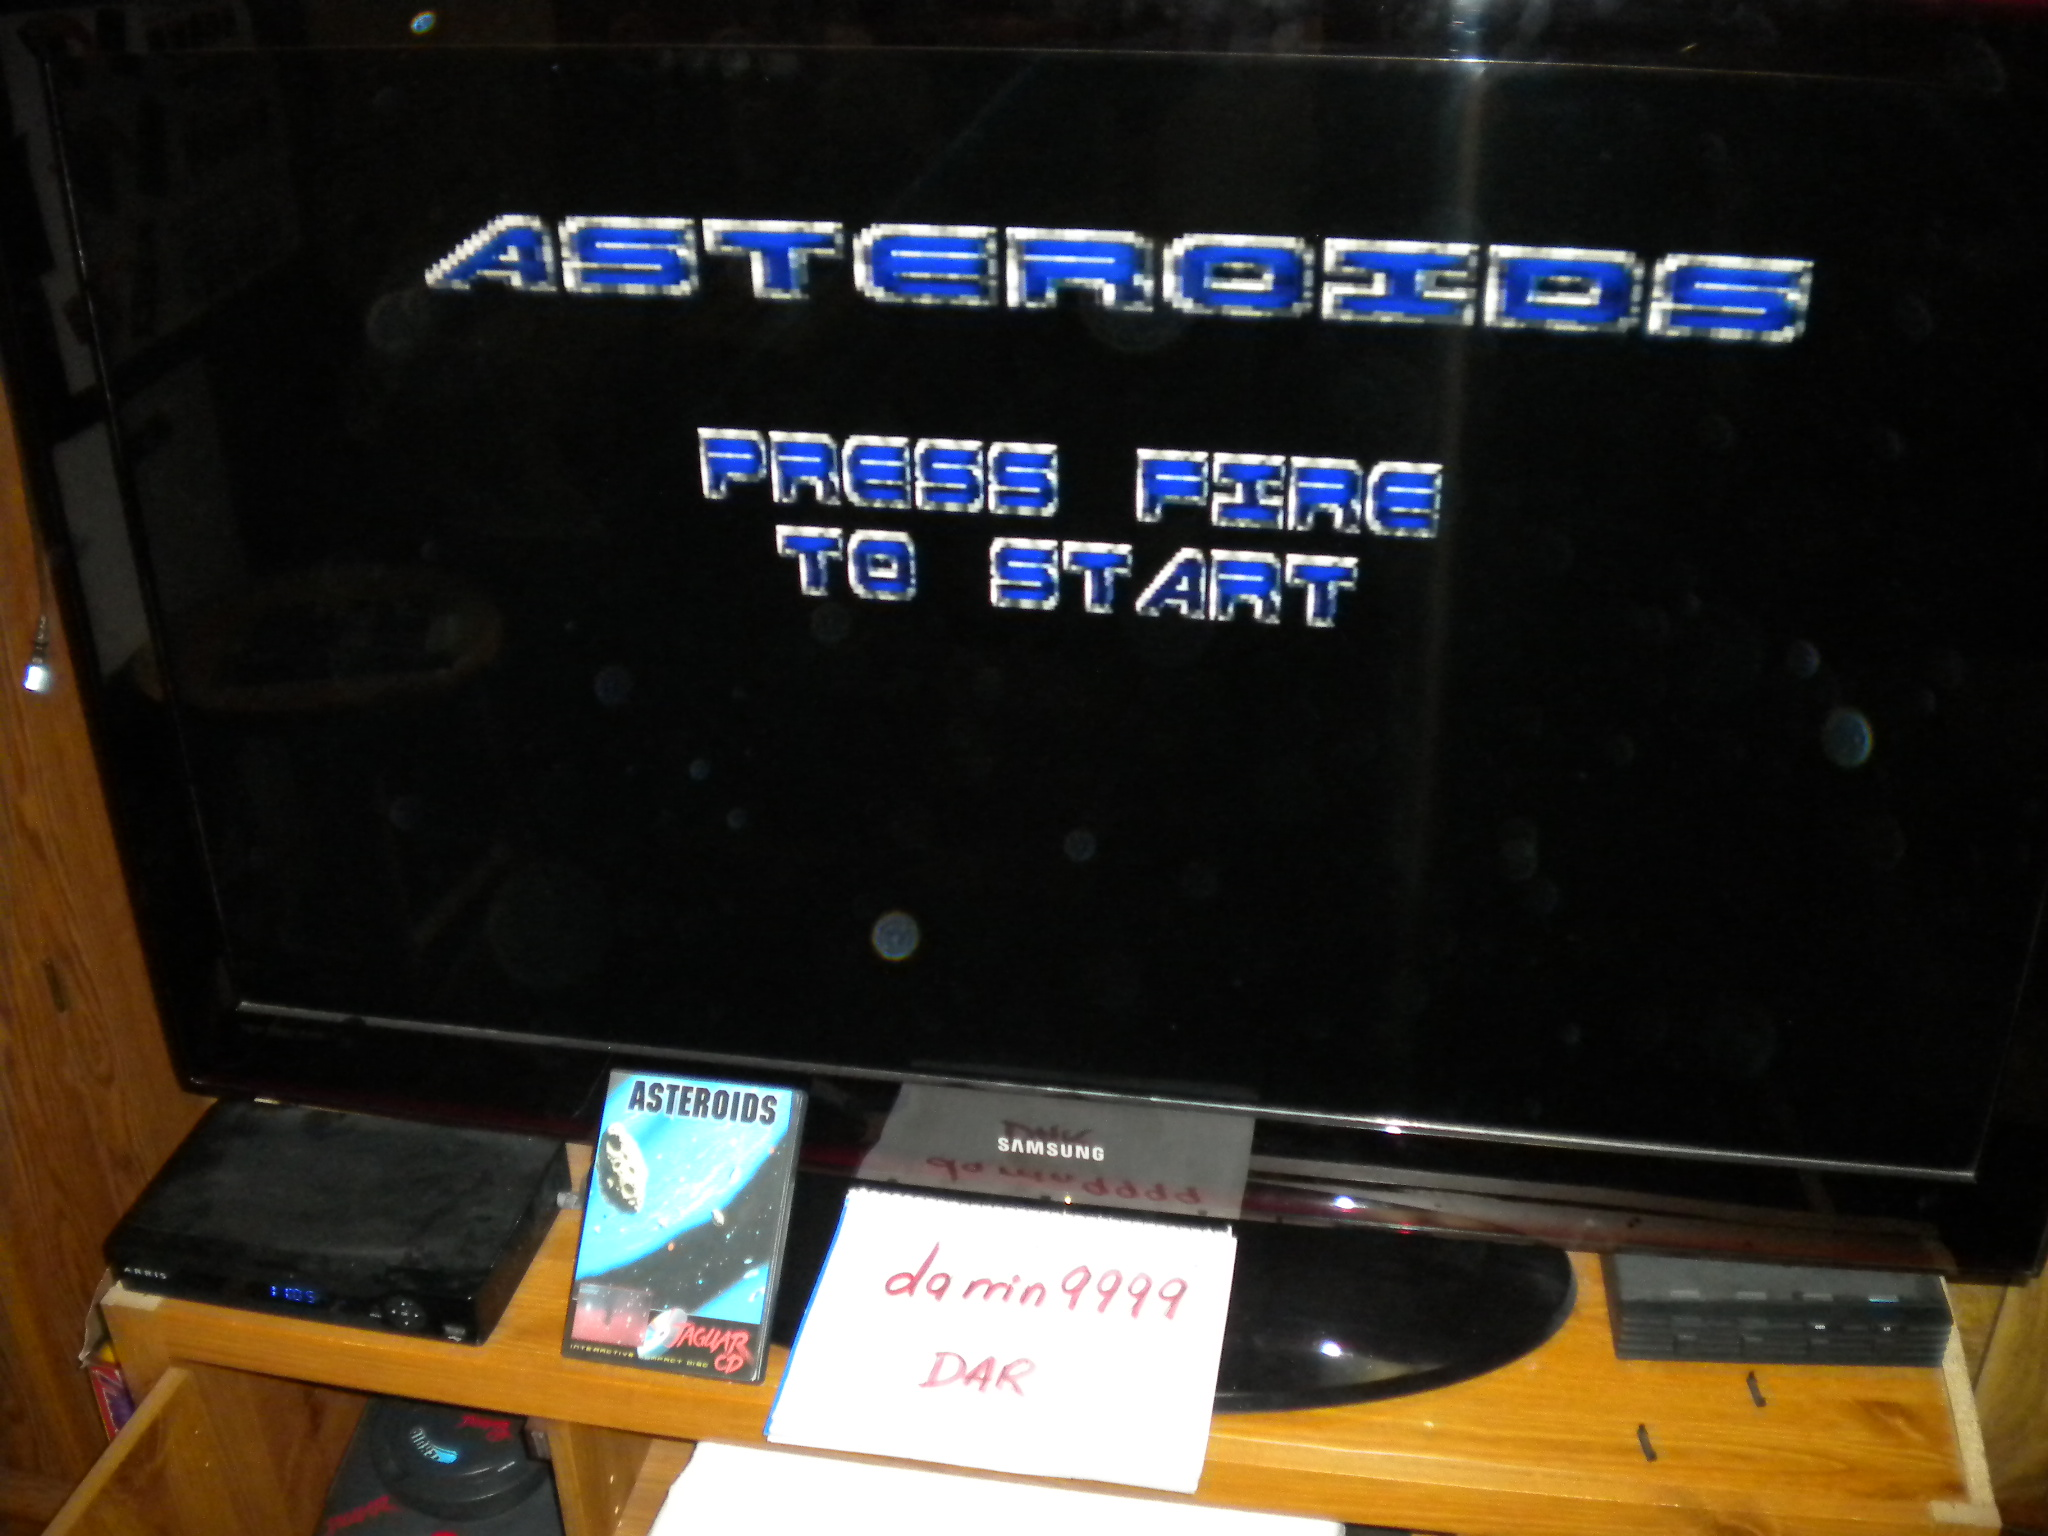 Asteroids 12,370 points